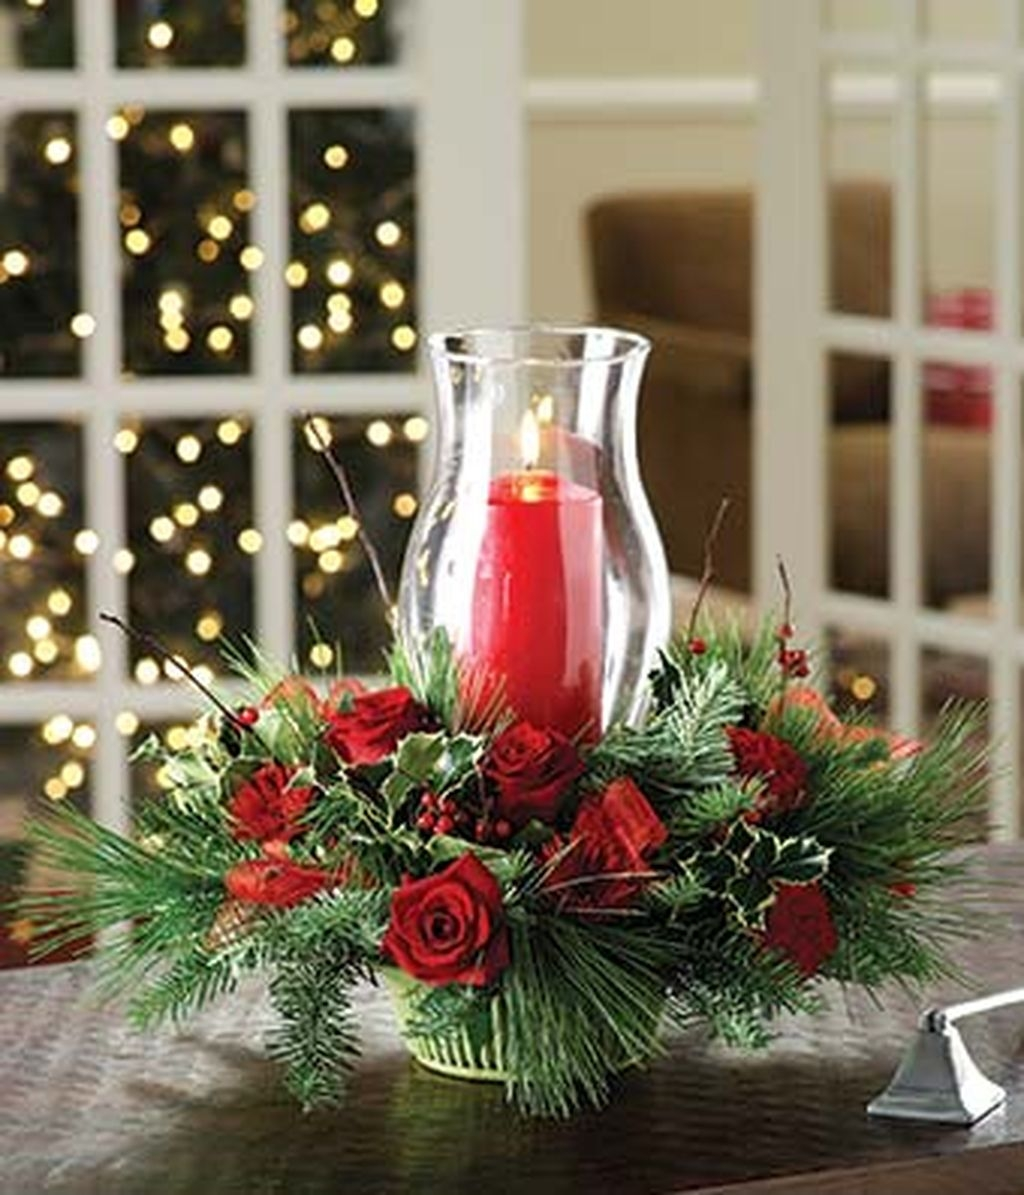 Romantic Christmas Centerpieces Ideas With Candles 32